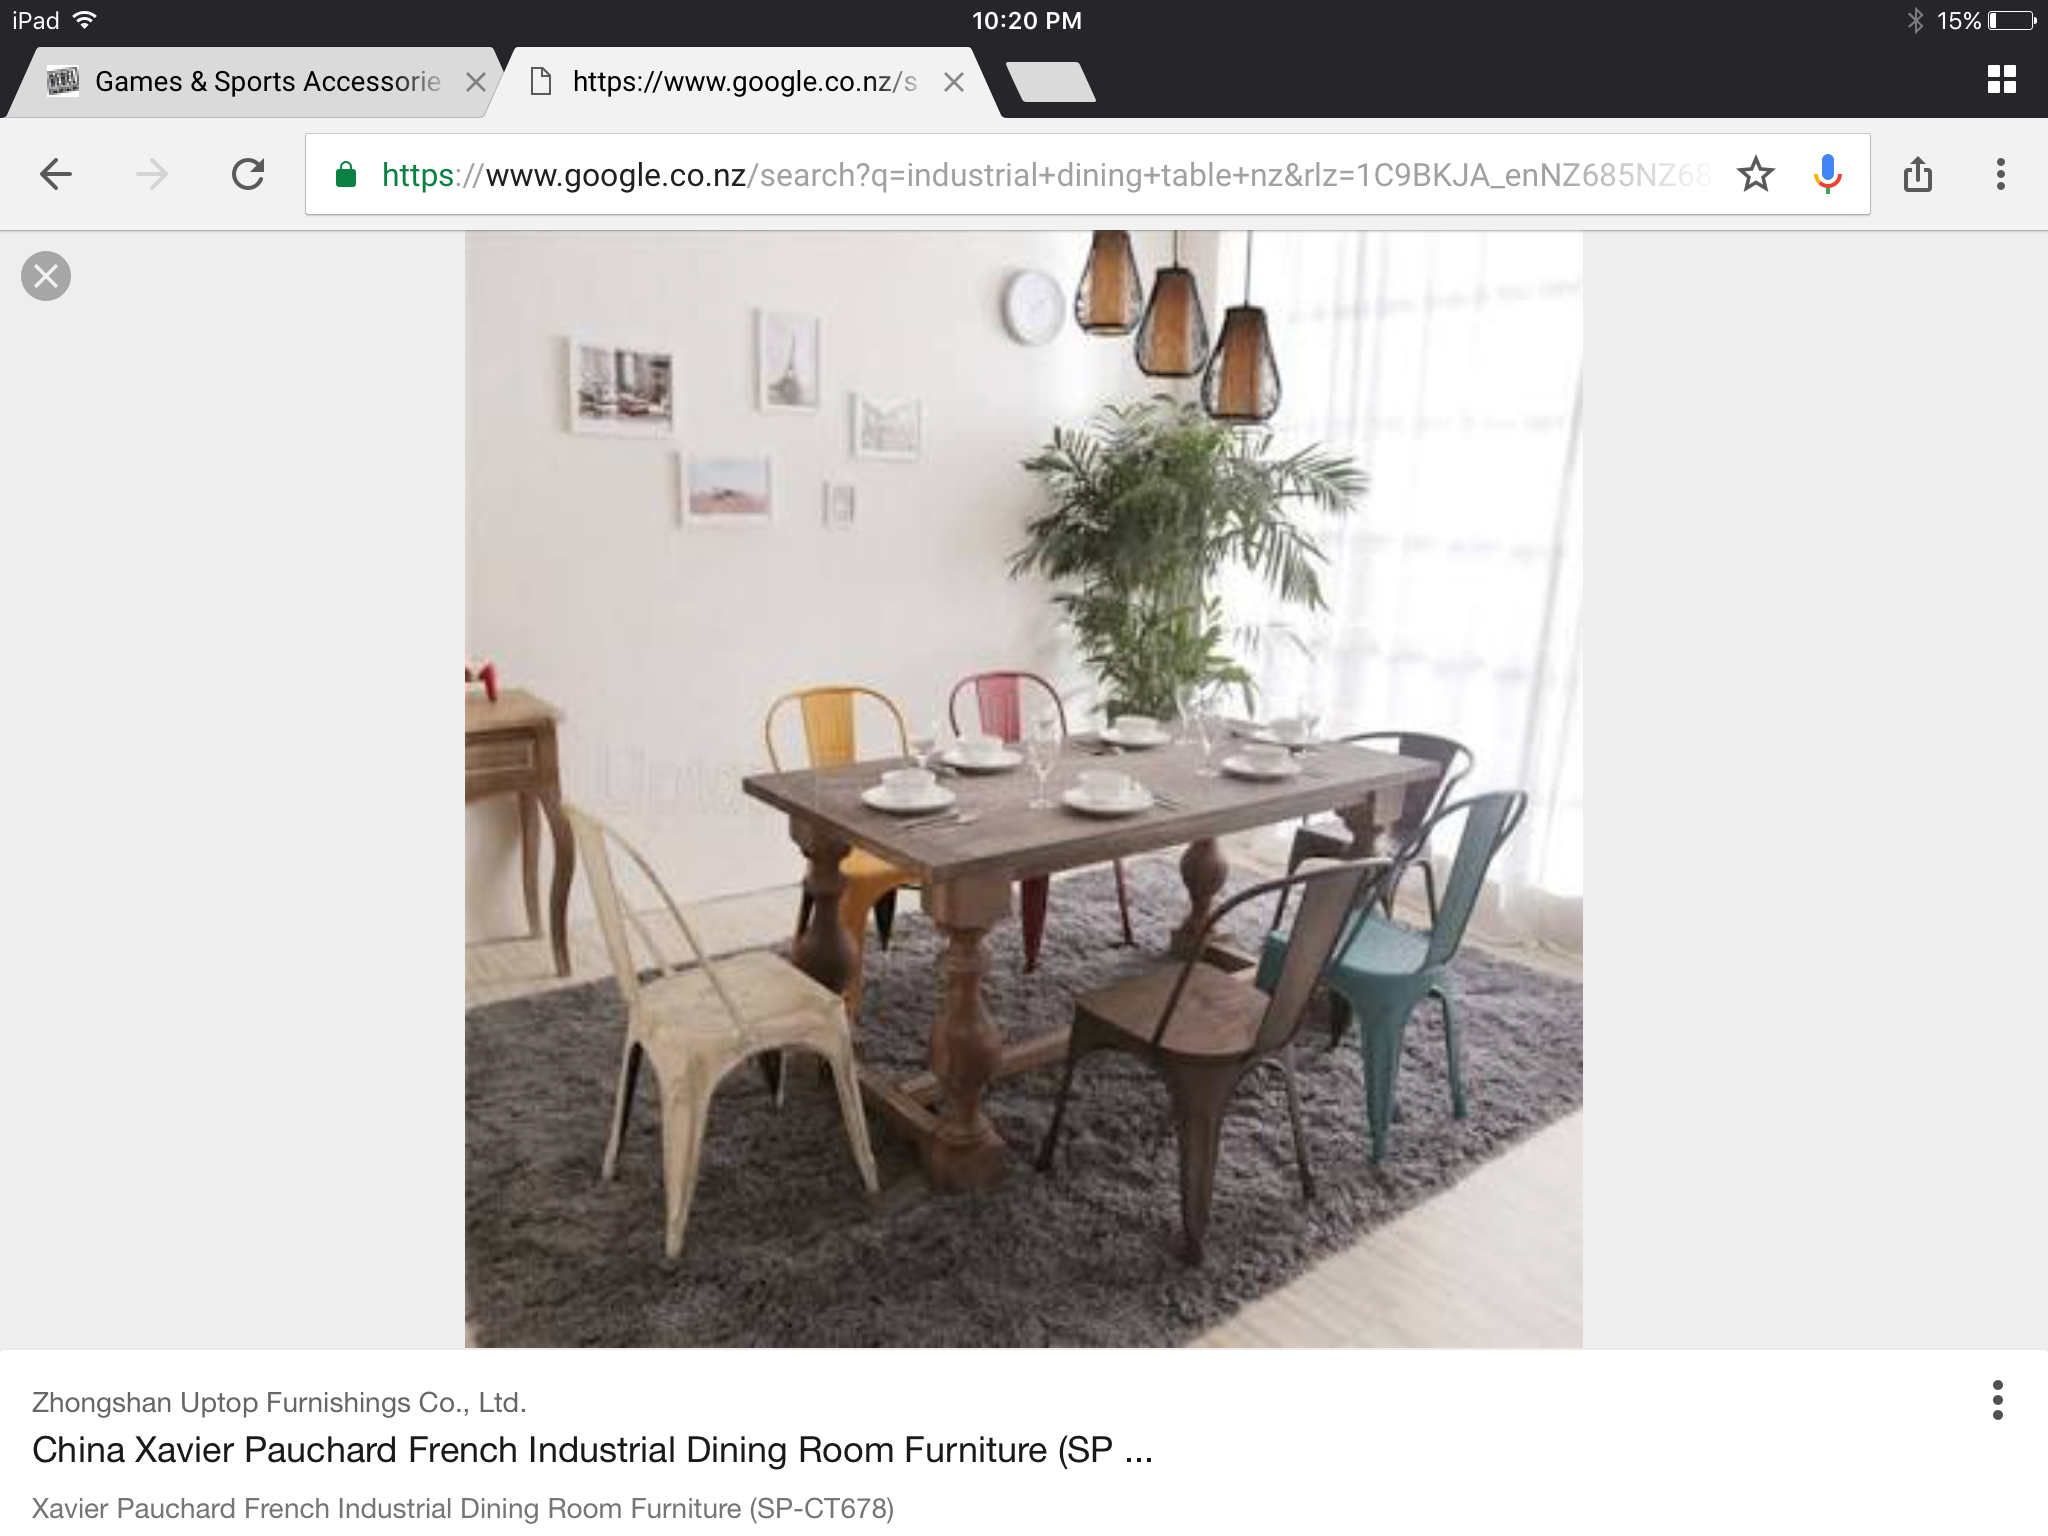 xavier pauchard french industrial dining room furniture. french industrial dining table xavier pauchard room furniture